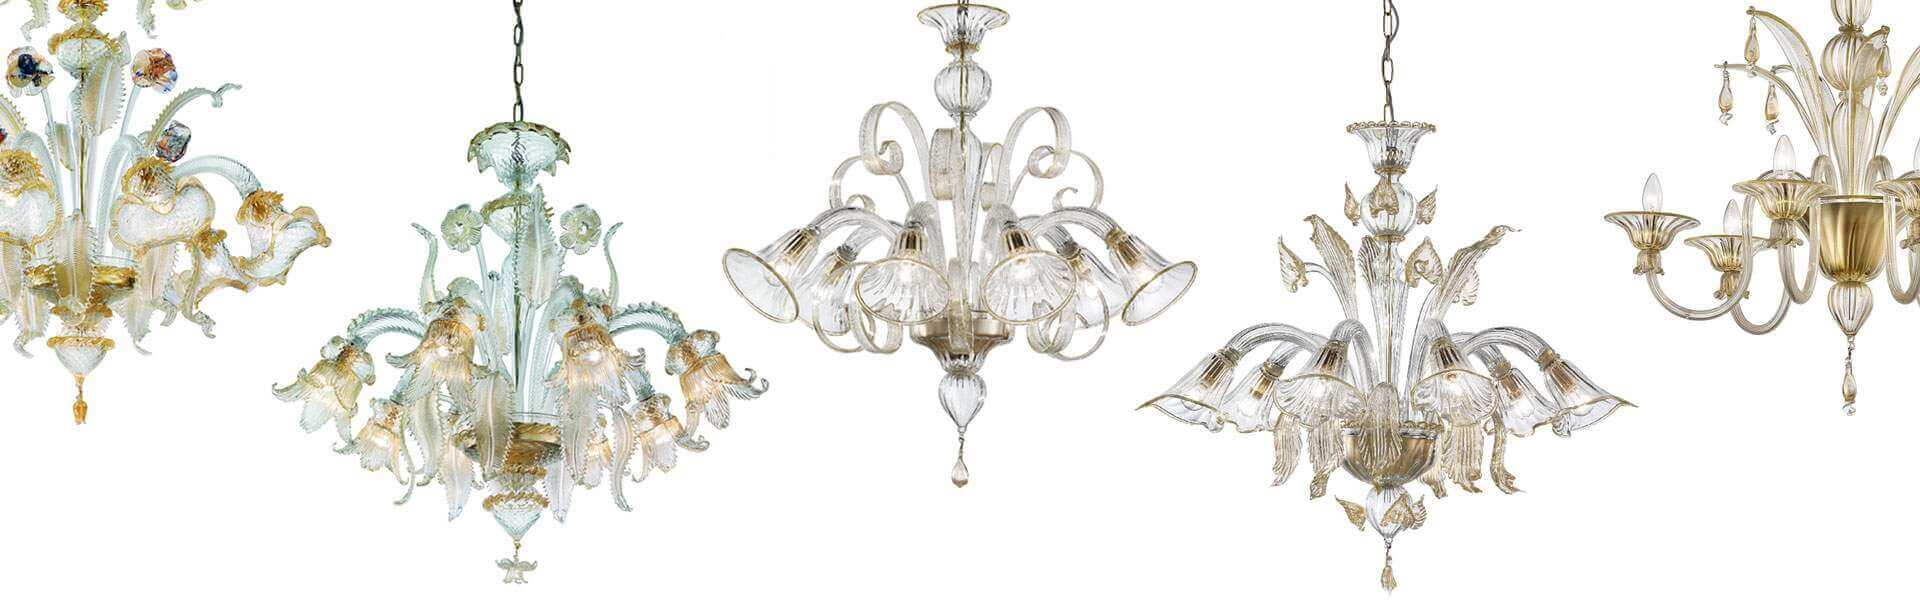 chandelier fray opaline glass murano chandeliers product jean crystal marc d